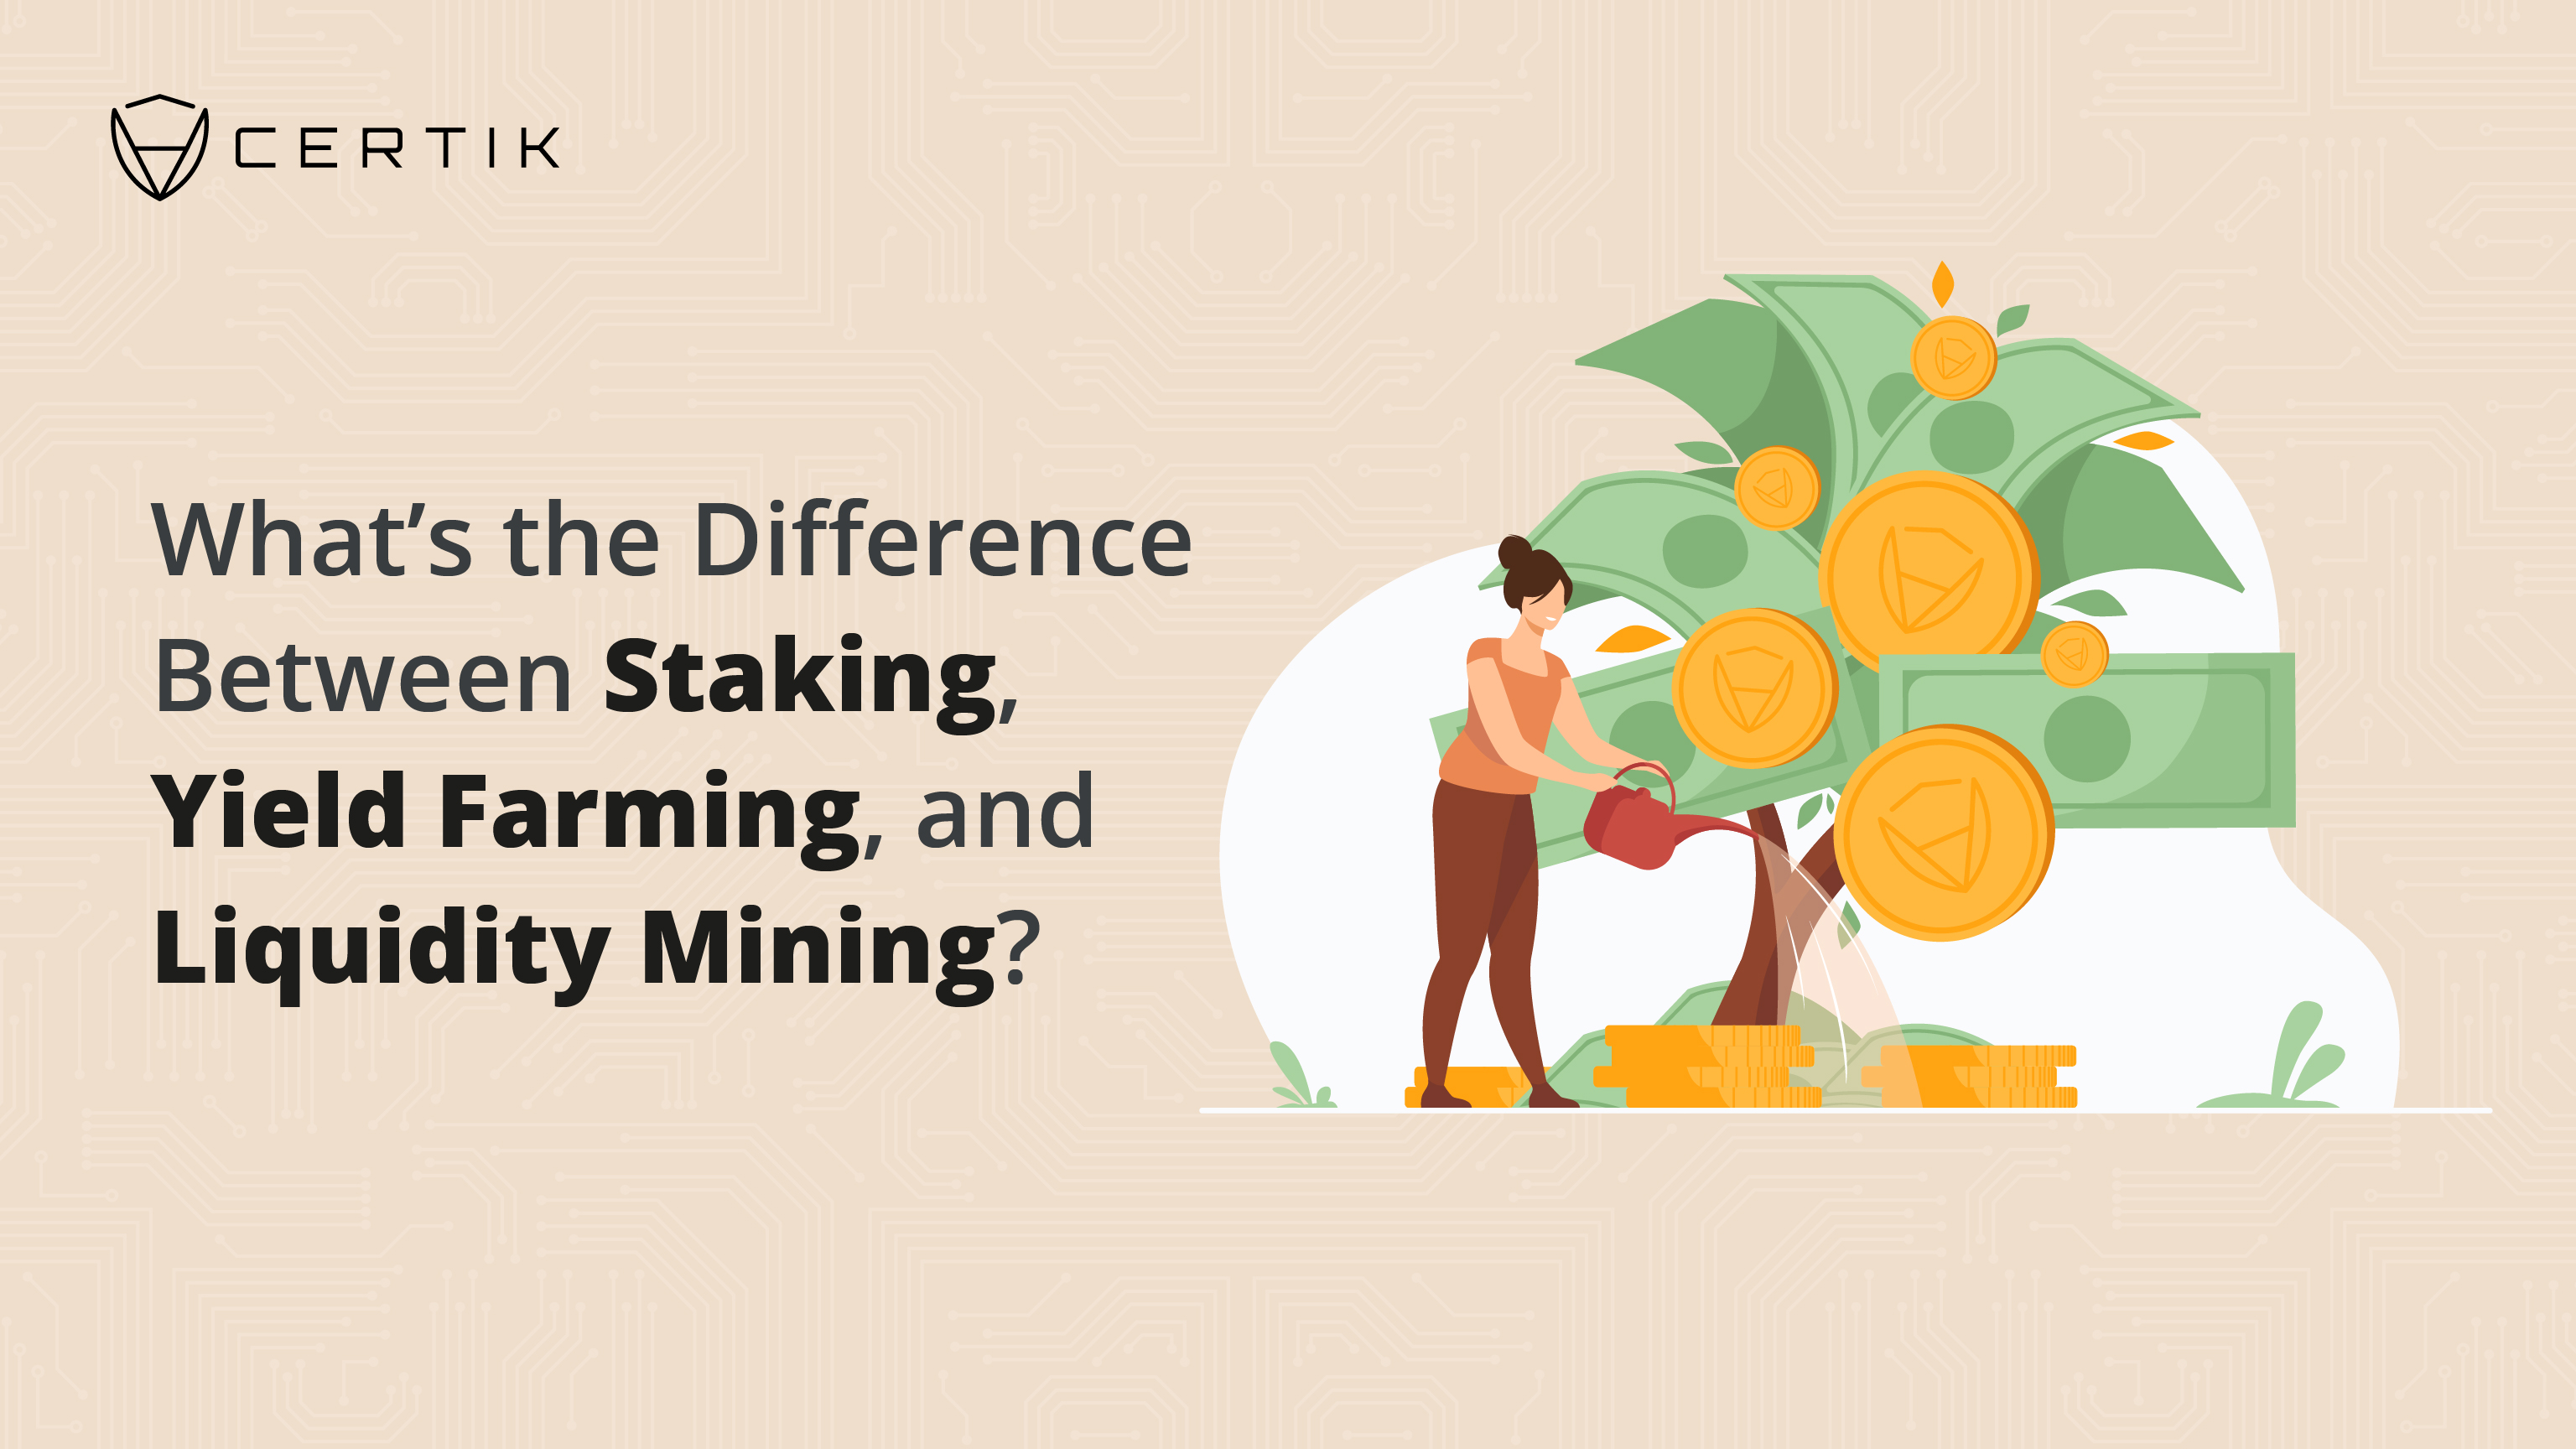 What's the Difference Between Staking, Yield Farming, and Liquidity Mining?